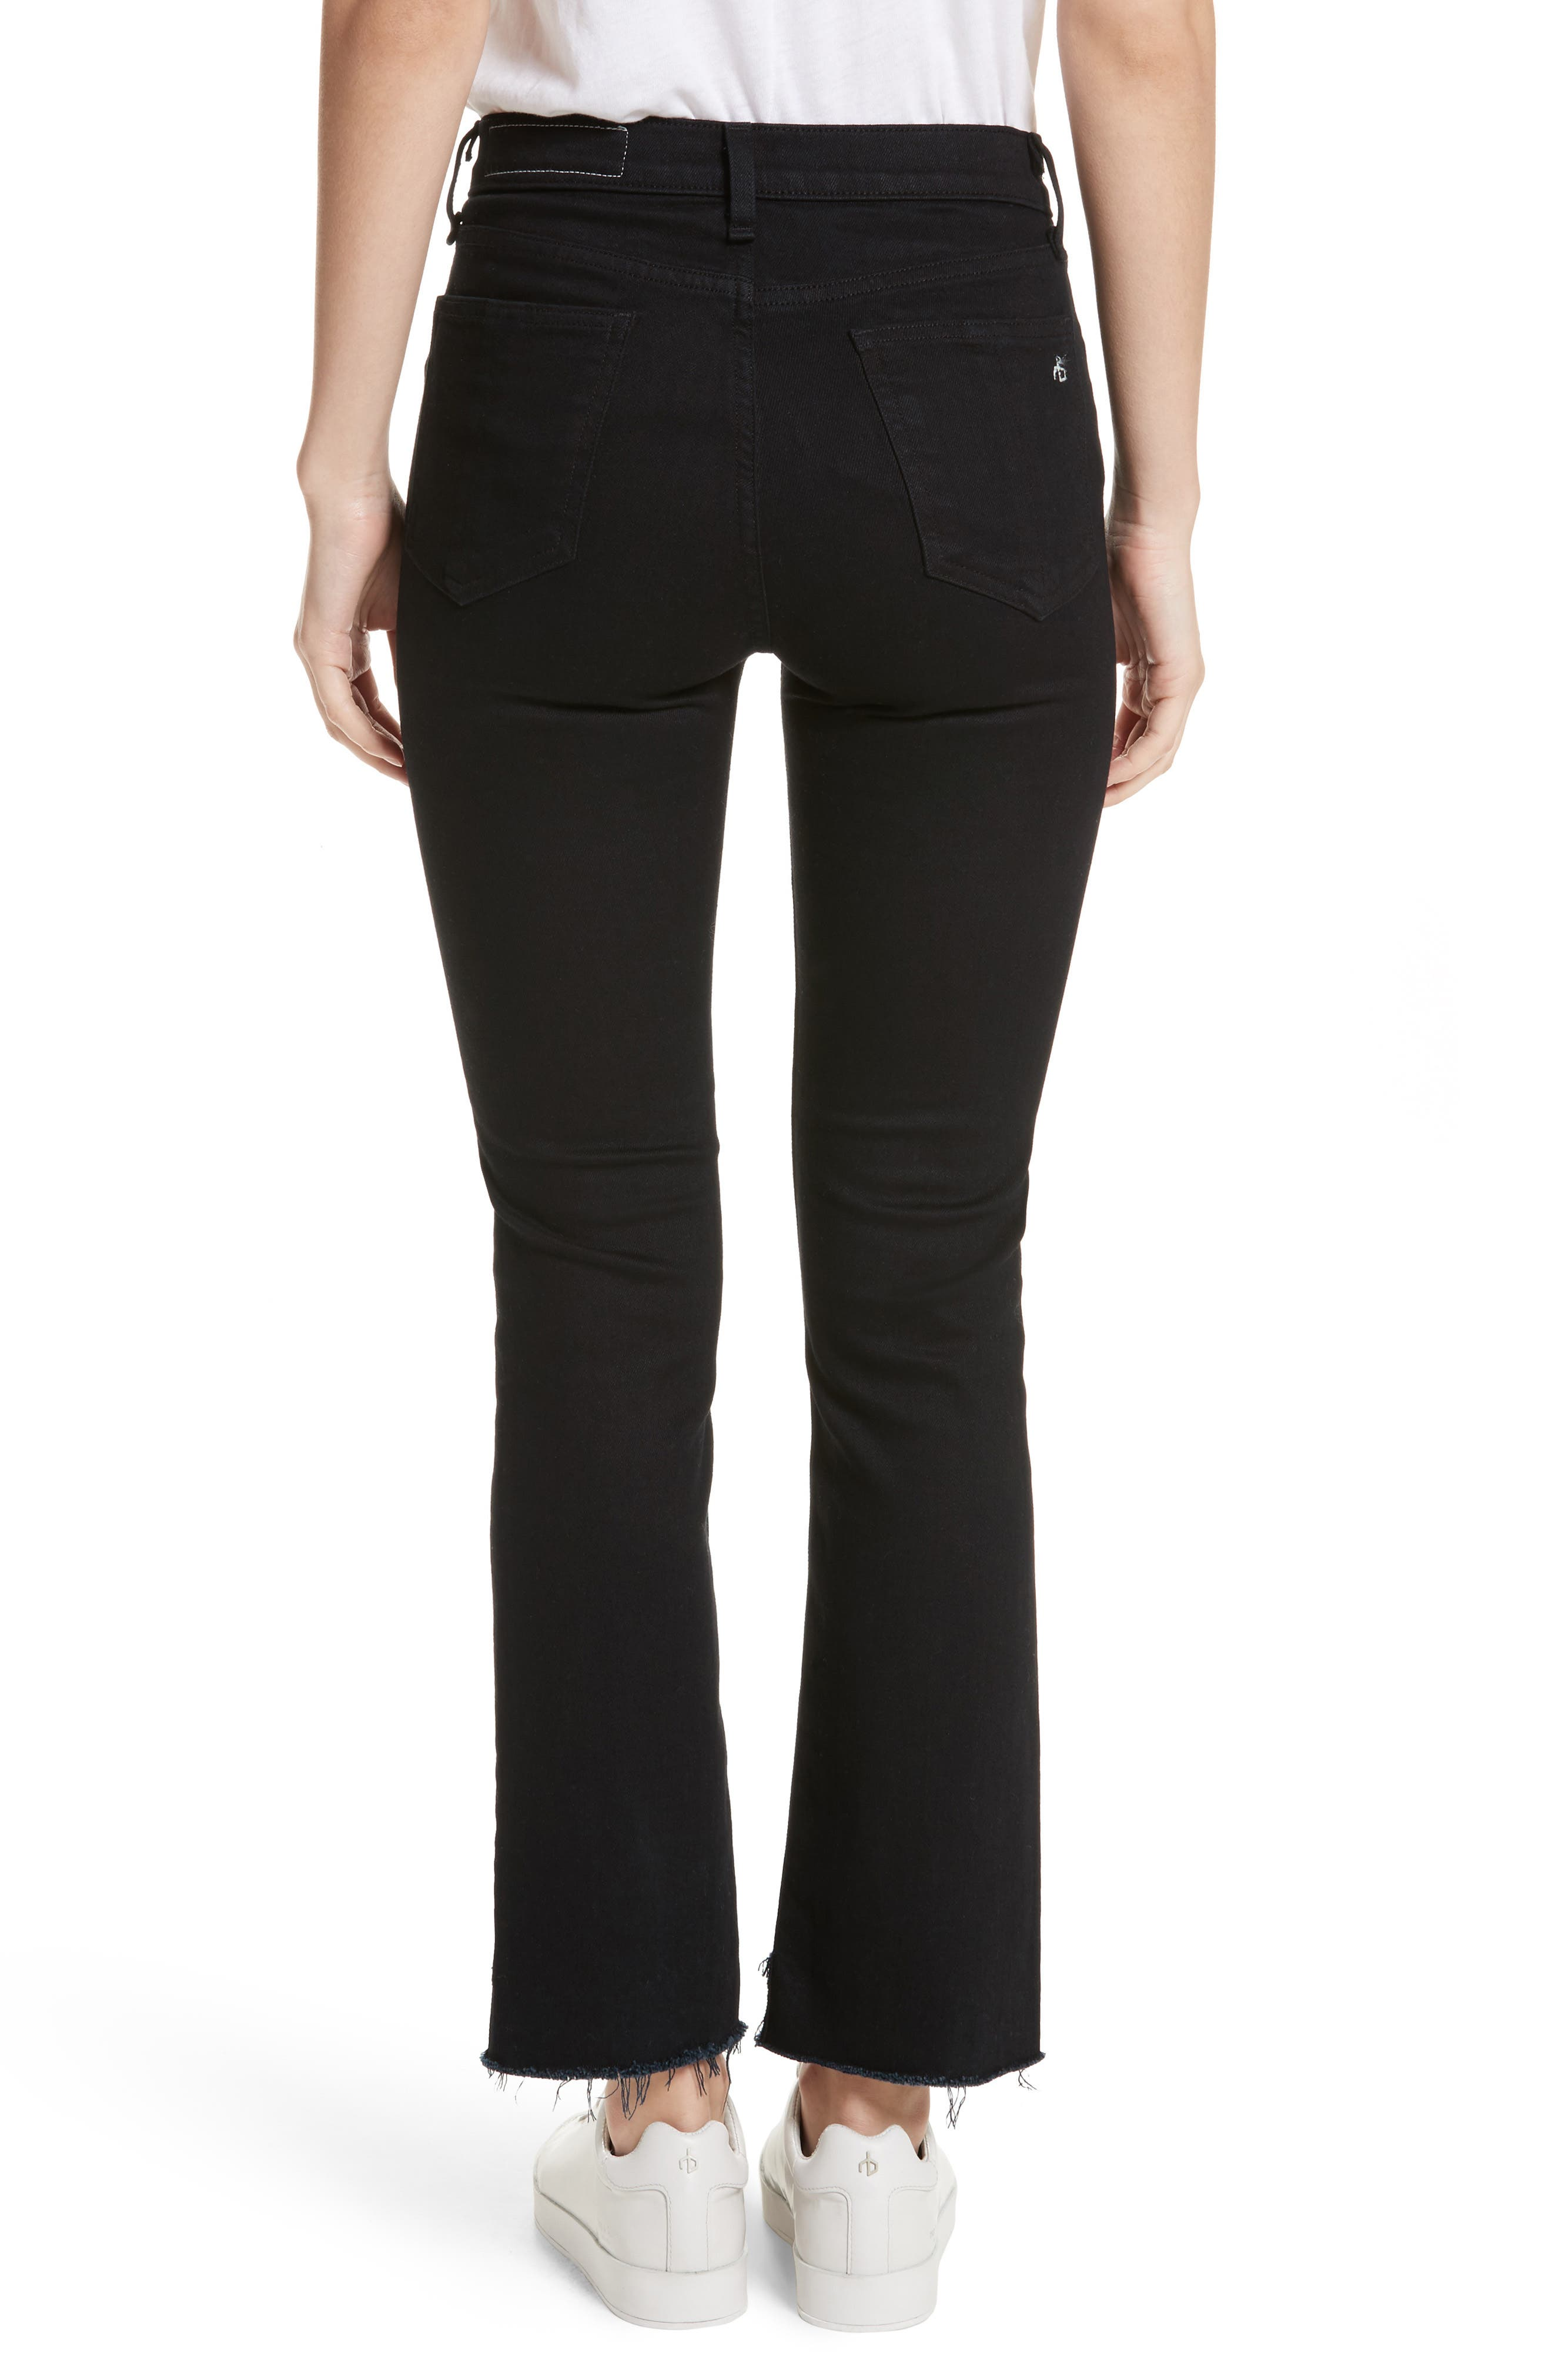 Alternate Image 2  - rag & bone/JEAN High Waist Stovepipe Jeans (Byan)